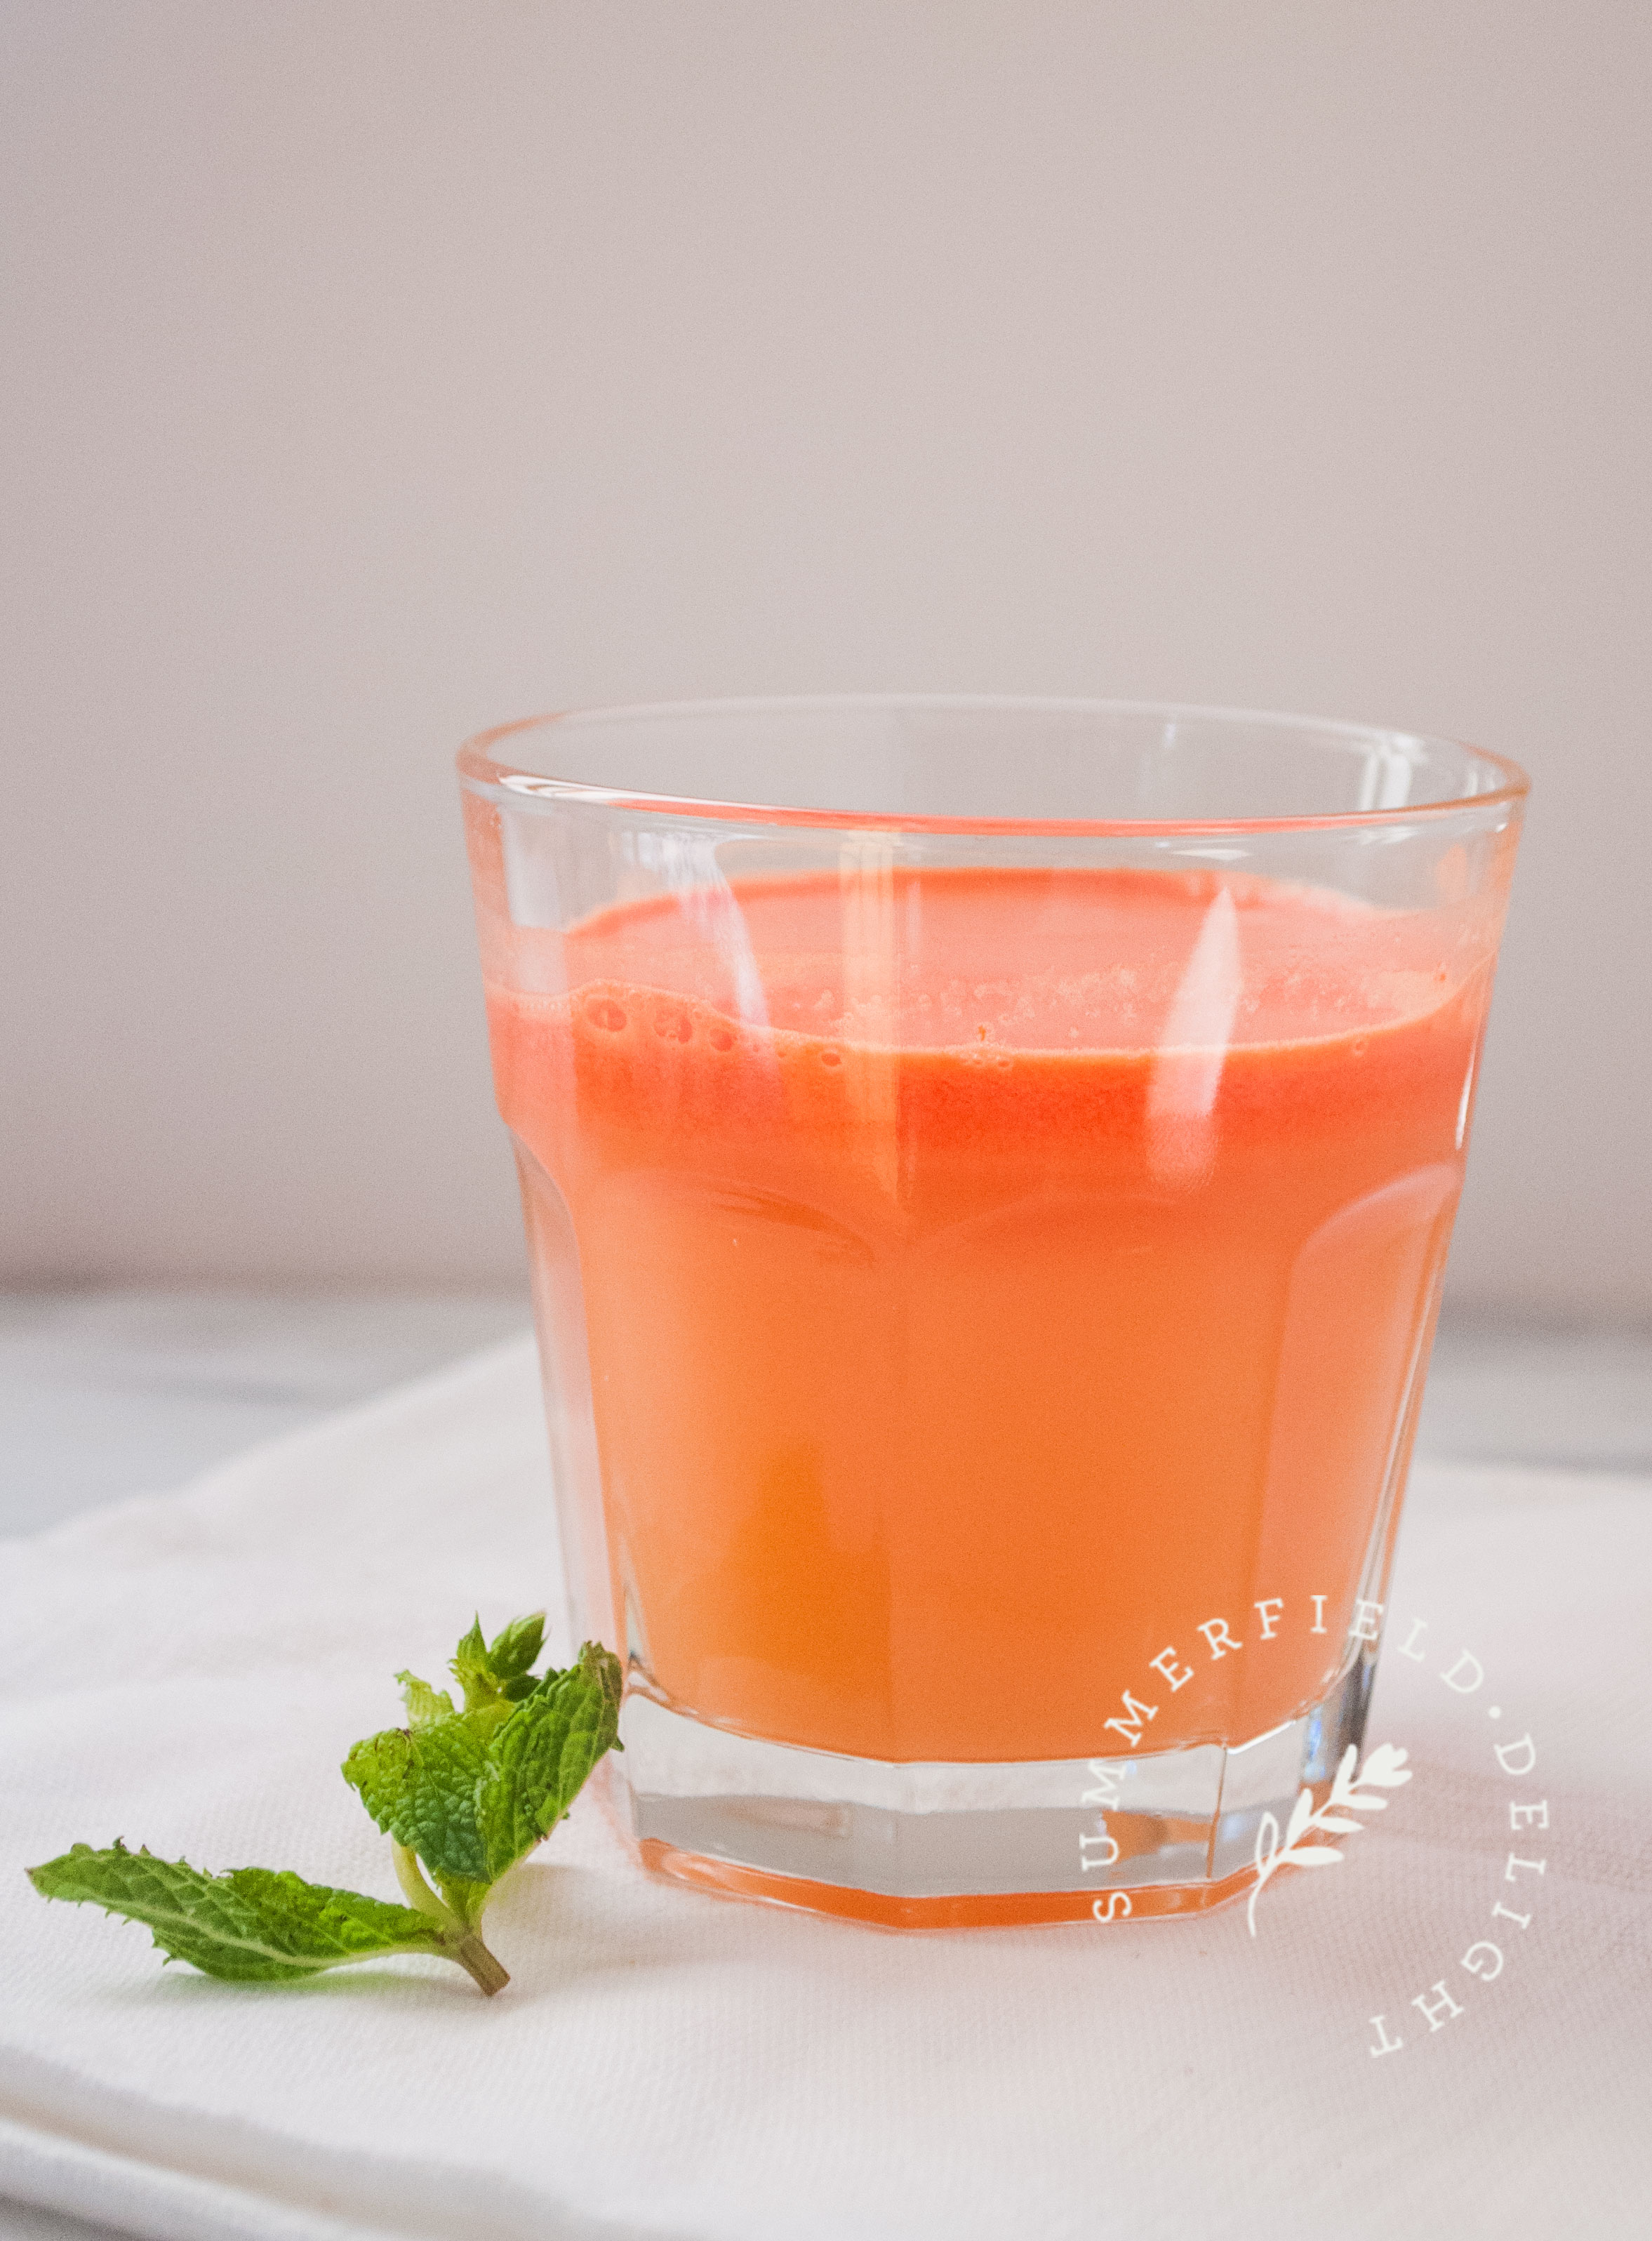 Watermelon Grapefruit Juice with Ginger and Mint